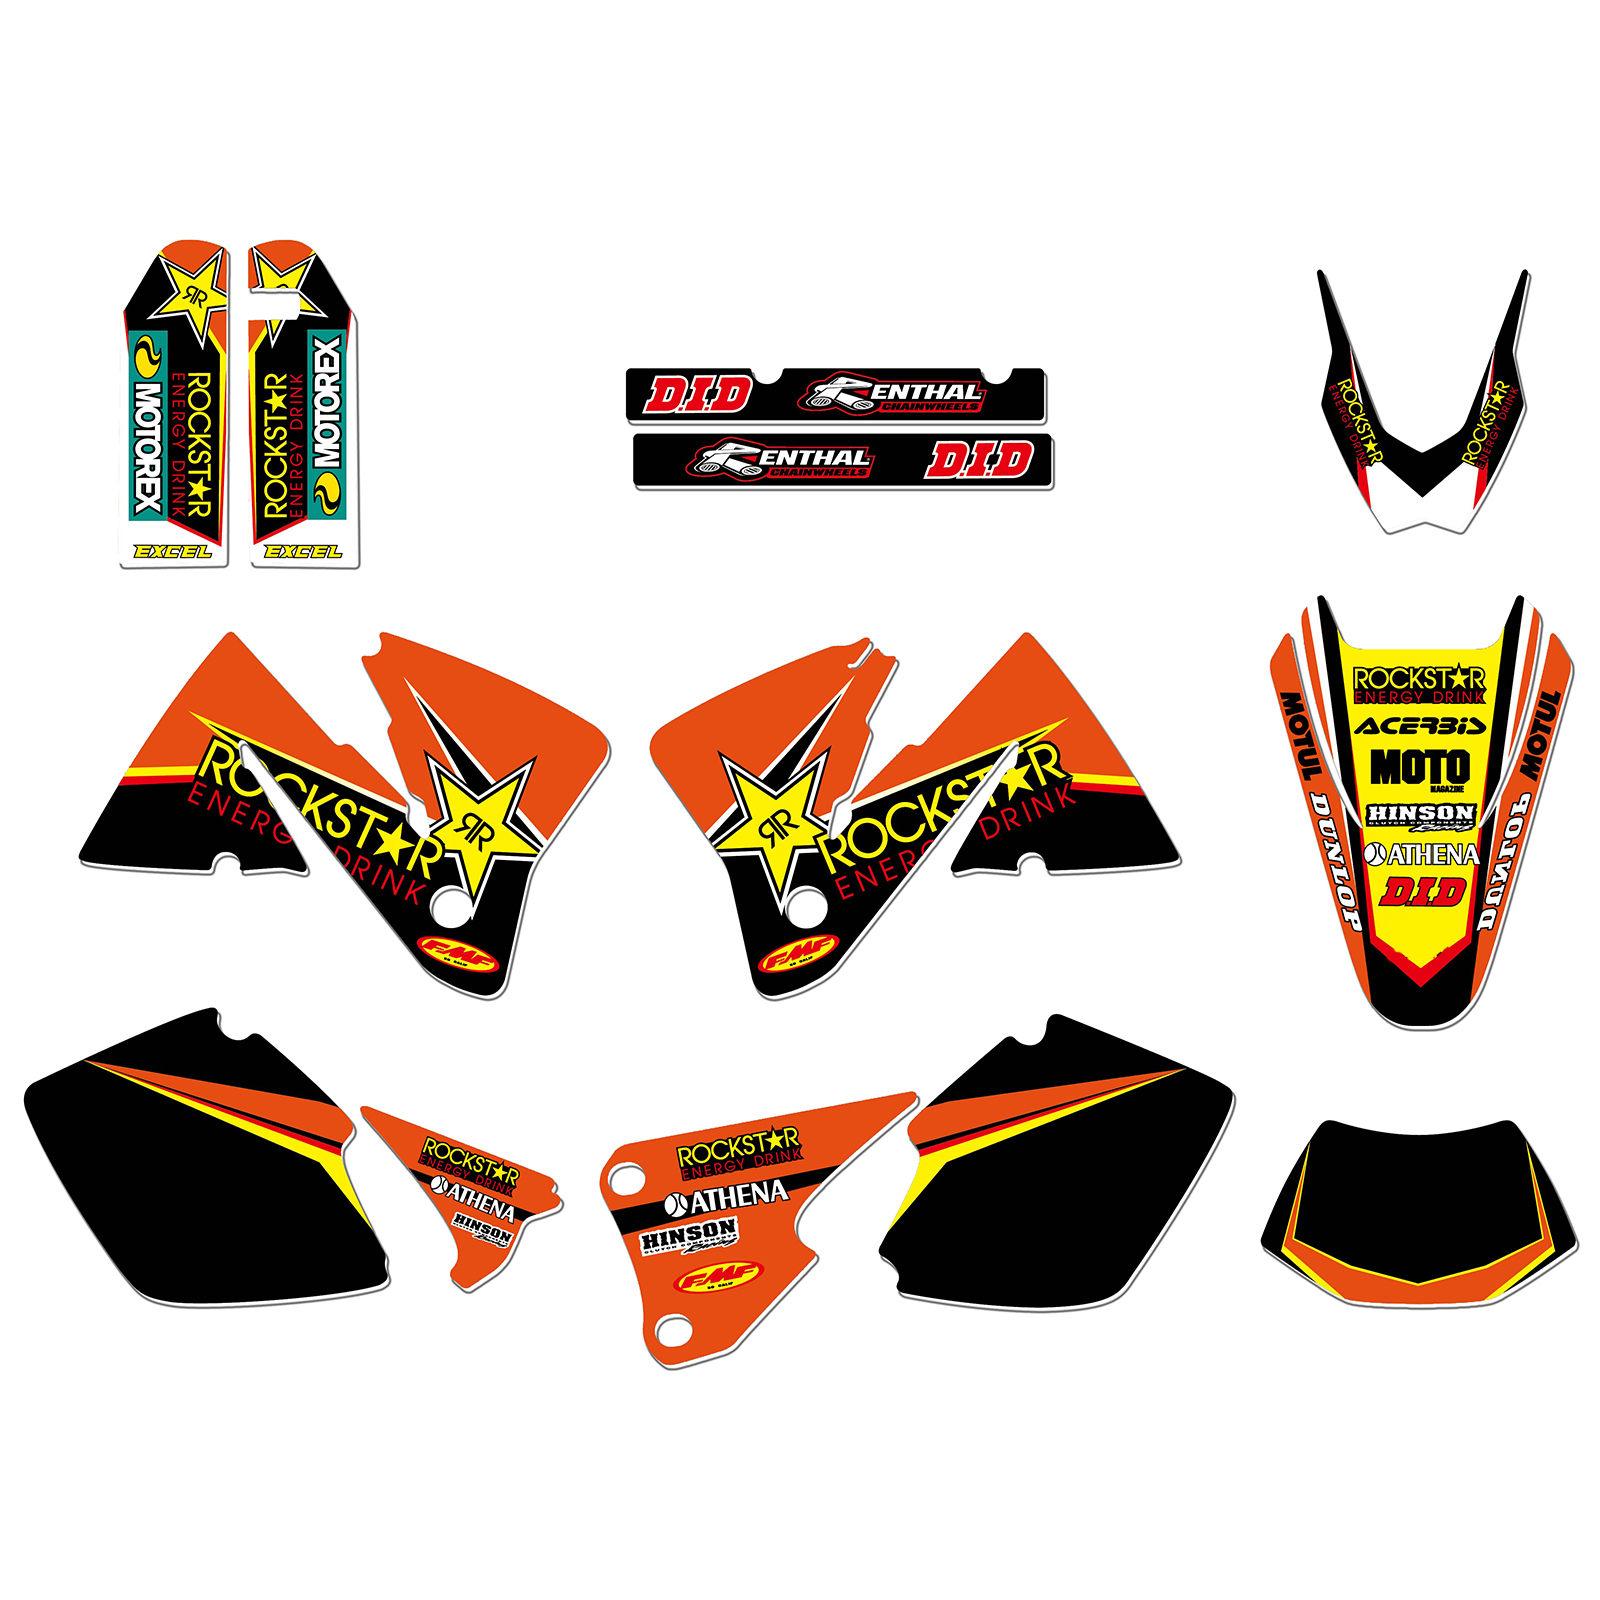 NEW STAR TEAM GRAPHICS BACKGROUNDS DECALS STICKERS FIT FOR KTM MXC 200 300 EXC 250 300